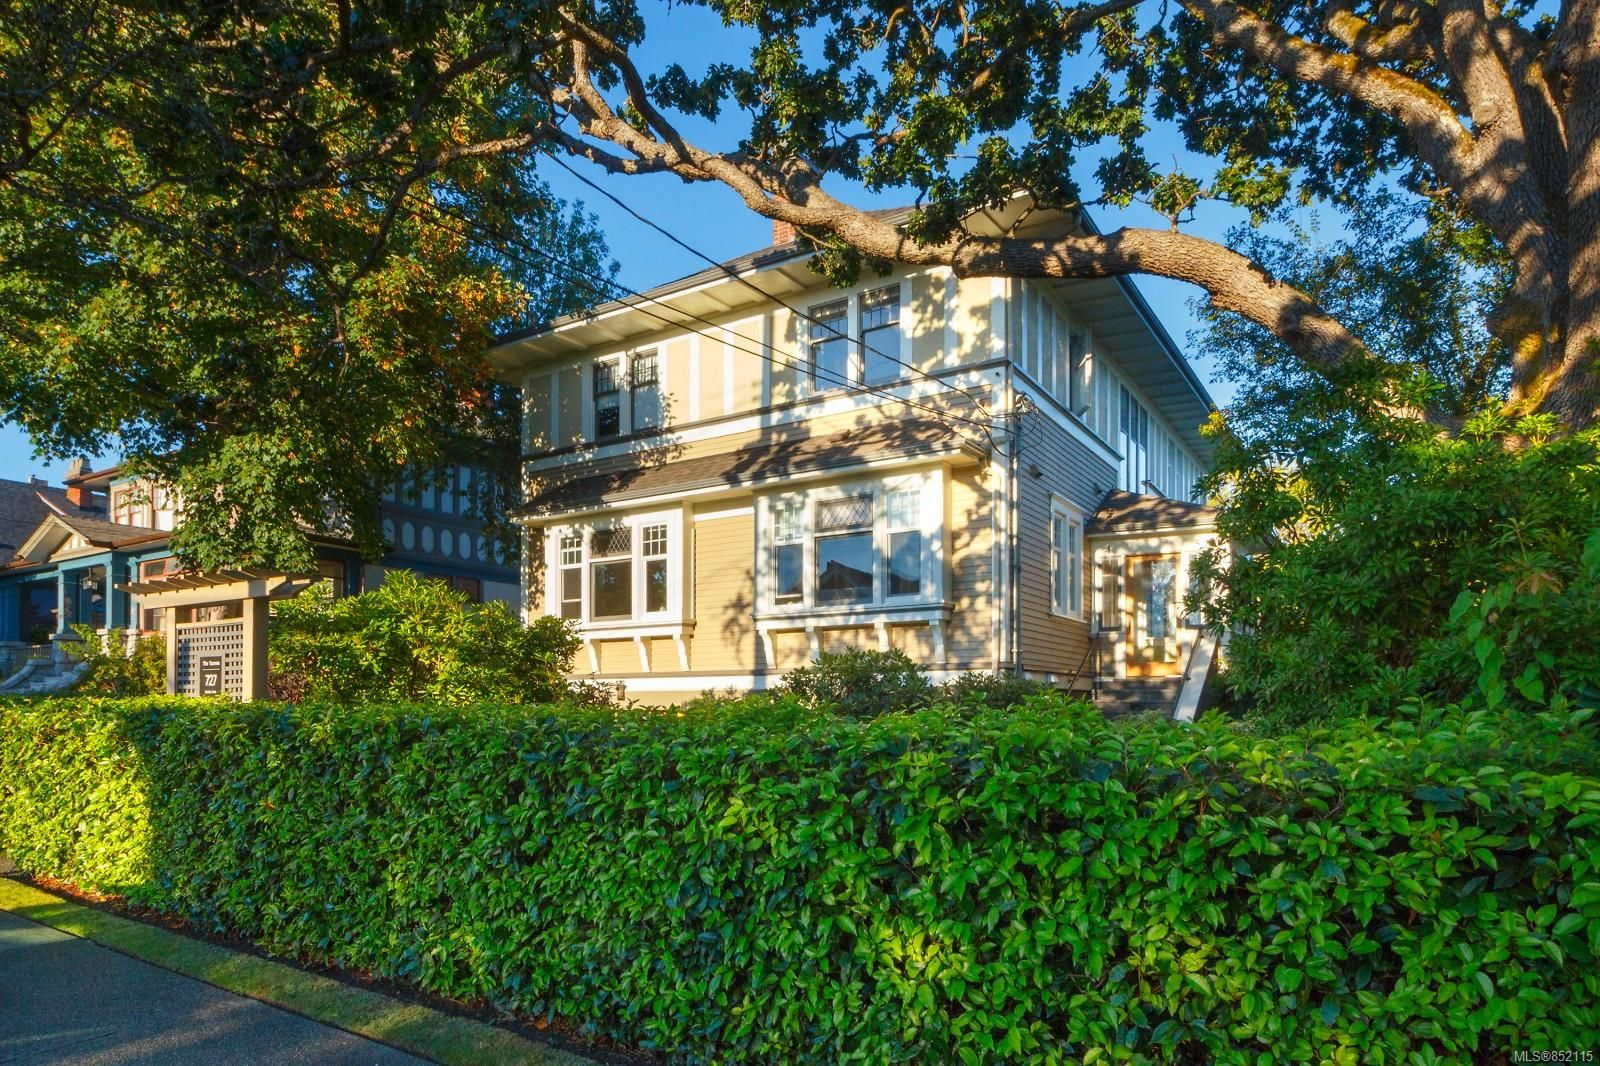 Main Photo: 3 727 Linden Ave in : Vi Fairfield West Row/Townhouse for sale (Victoria)  : MLS®# 852115